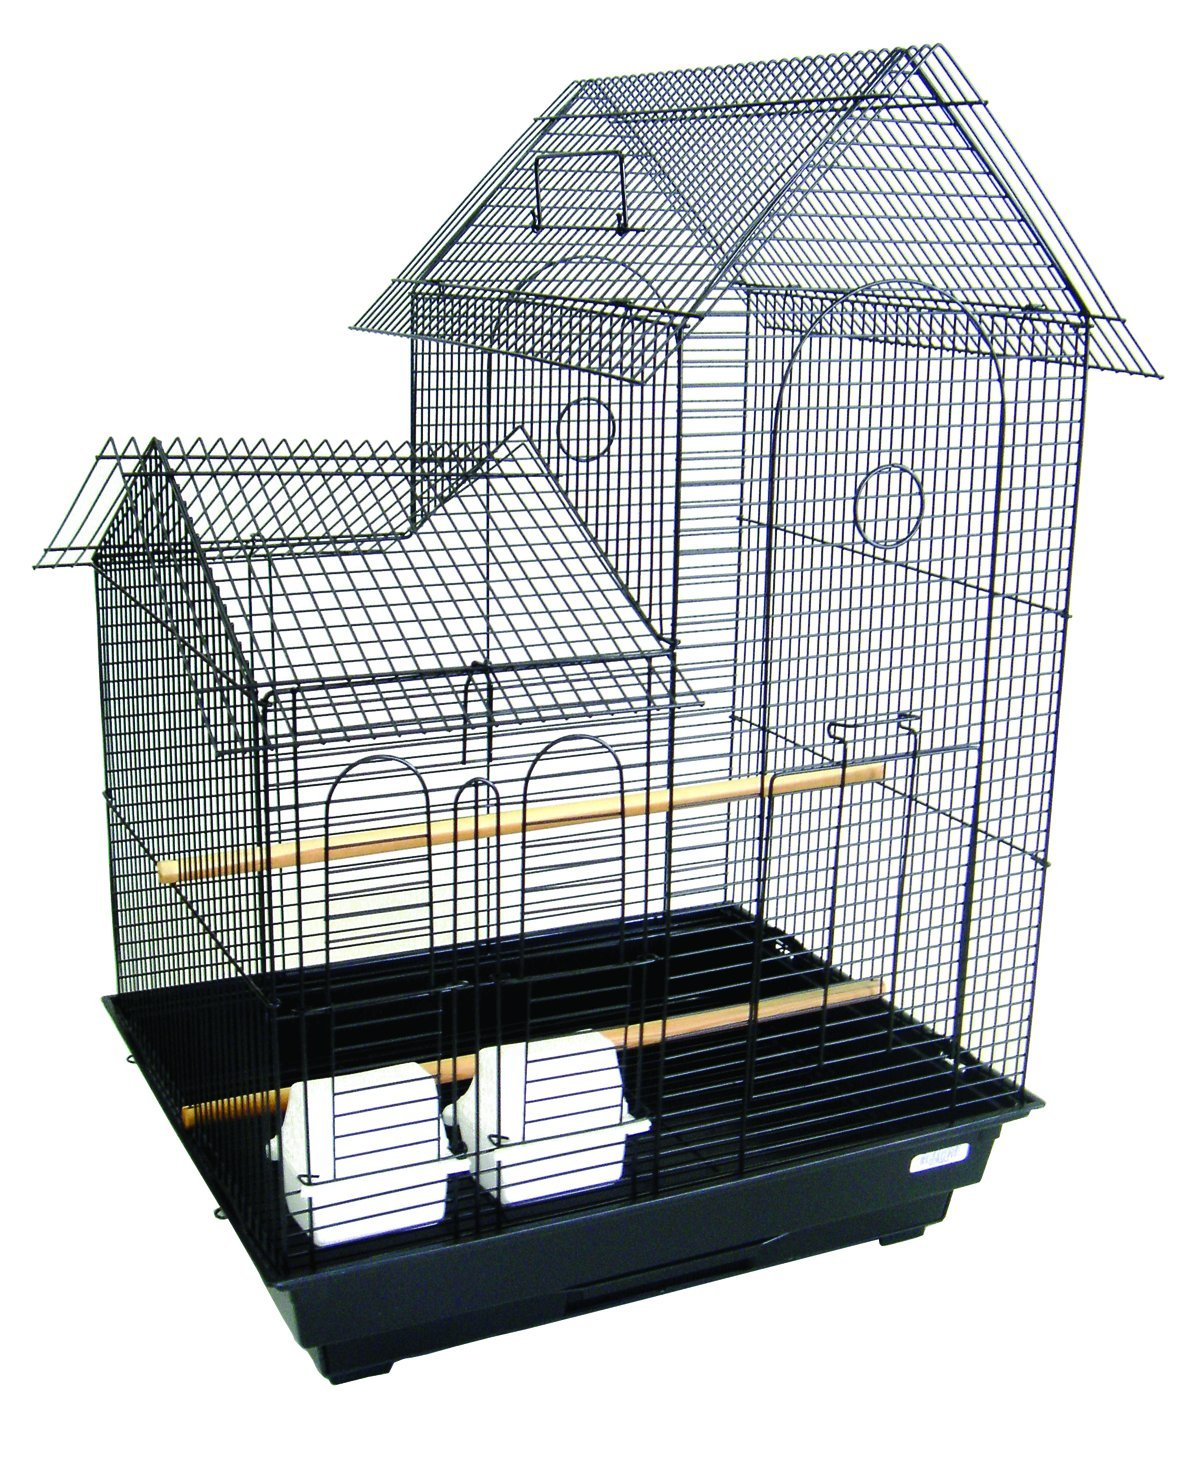 YML A1944 1/2-Inch Bar Spacing Villa Top Small Bird Cage, 20-Inch by 16-Inch, Black A1944BLK